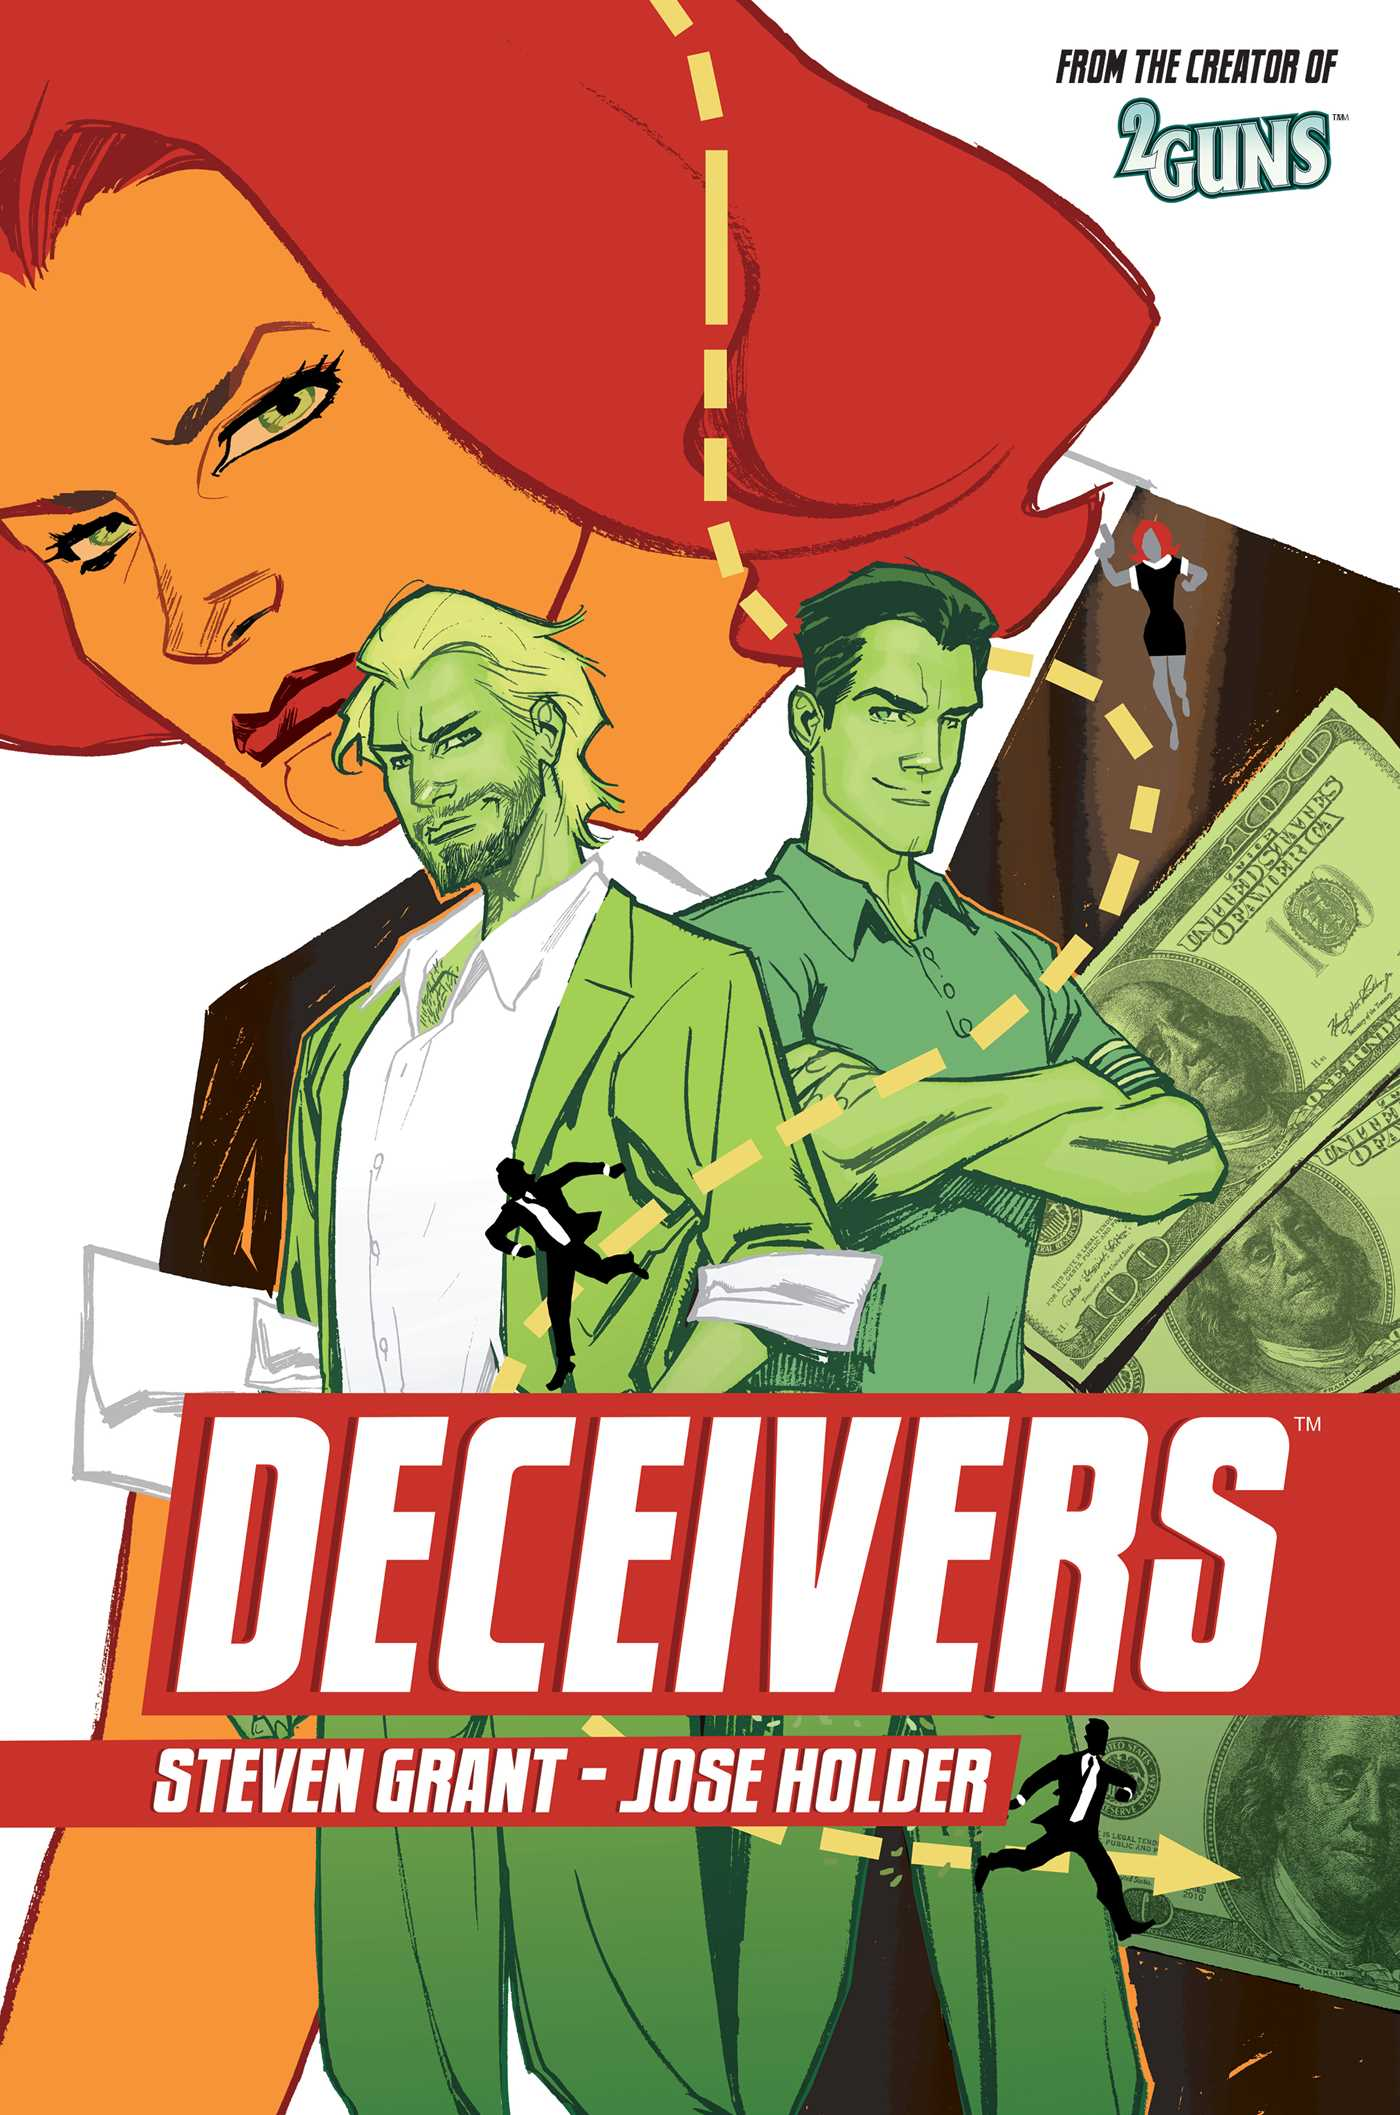 Deceivers-9781608864362_hr